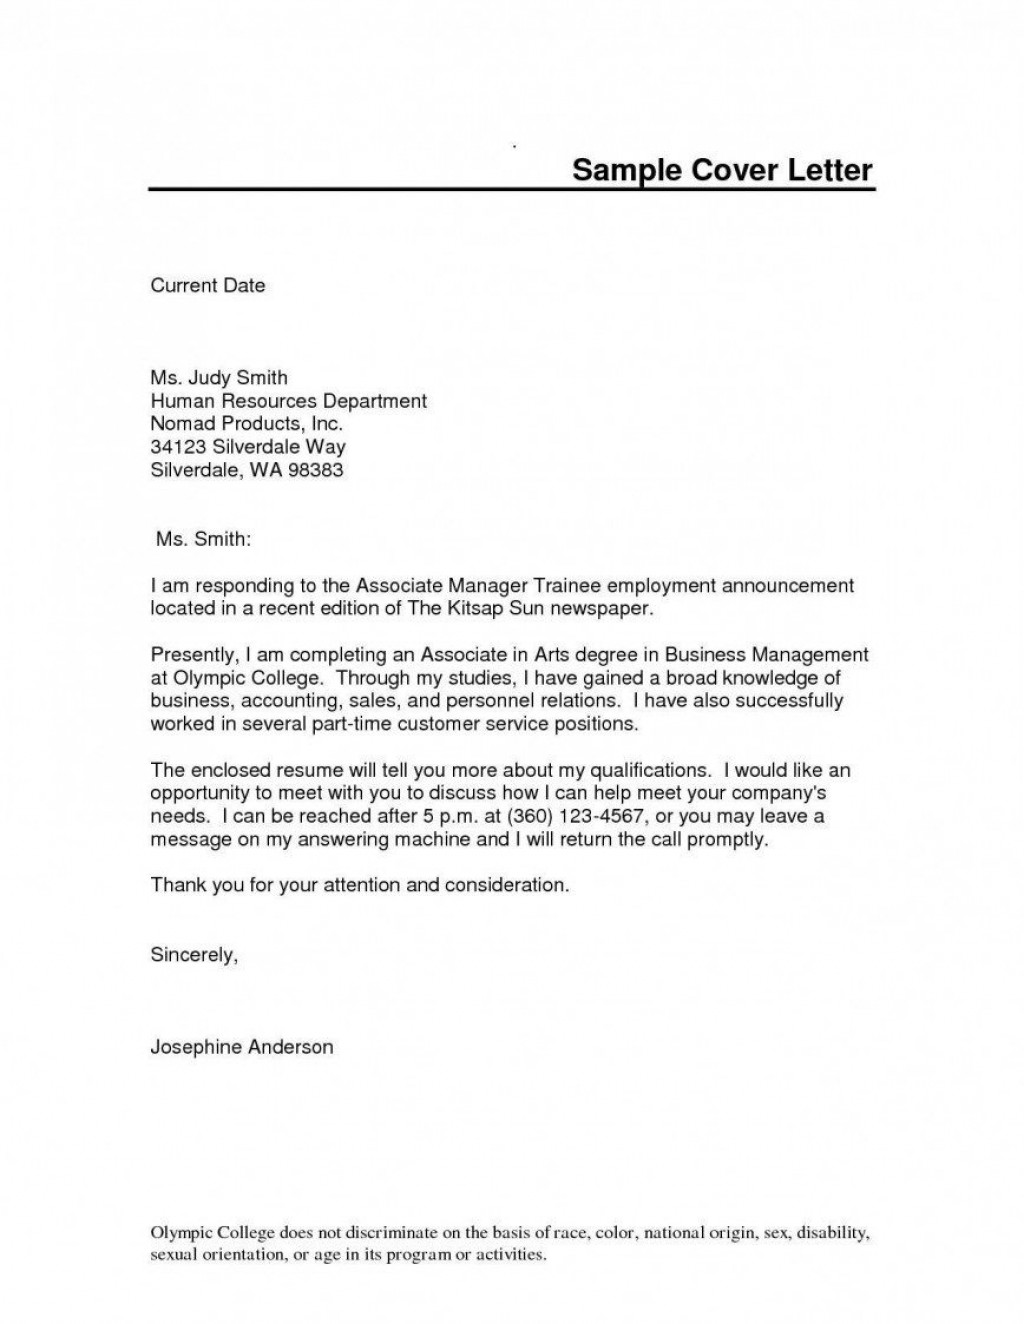 006 Sensational Microsoft Cover Letter Template Highest Clarity  Templates Free Resume Word Download 2010 PageLarge